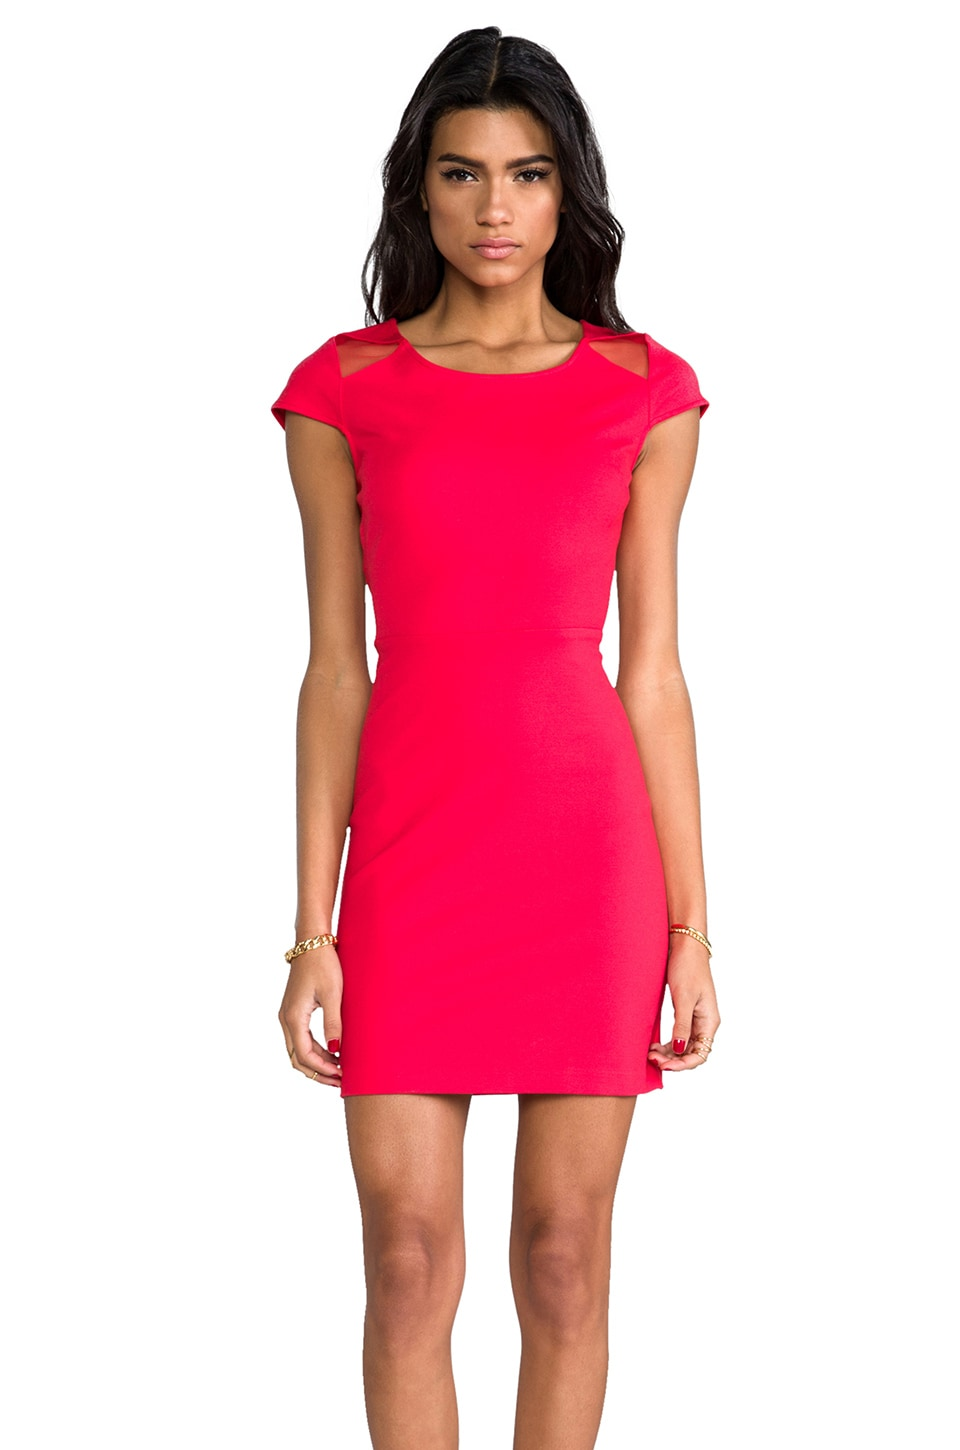 BB Dakota Edgemont Dress in Watermelon